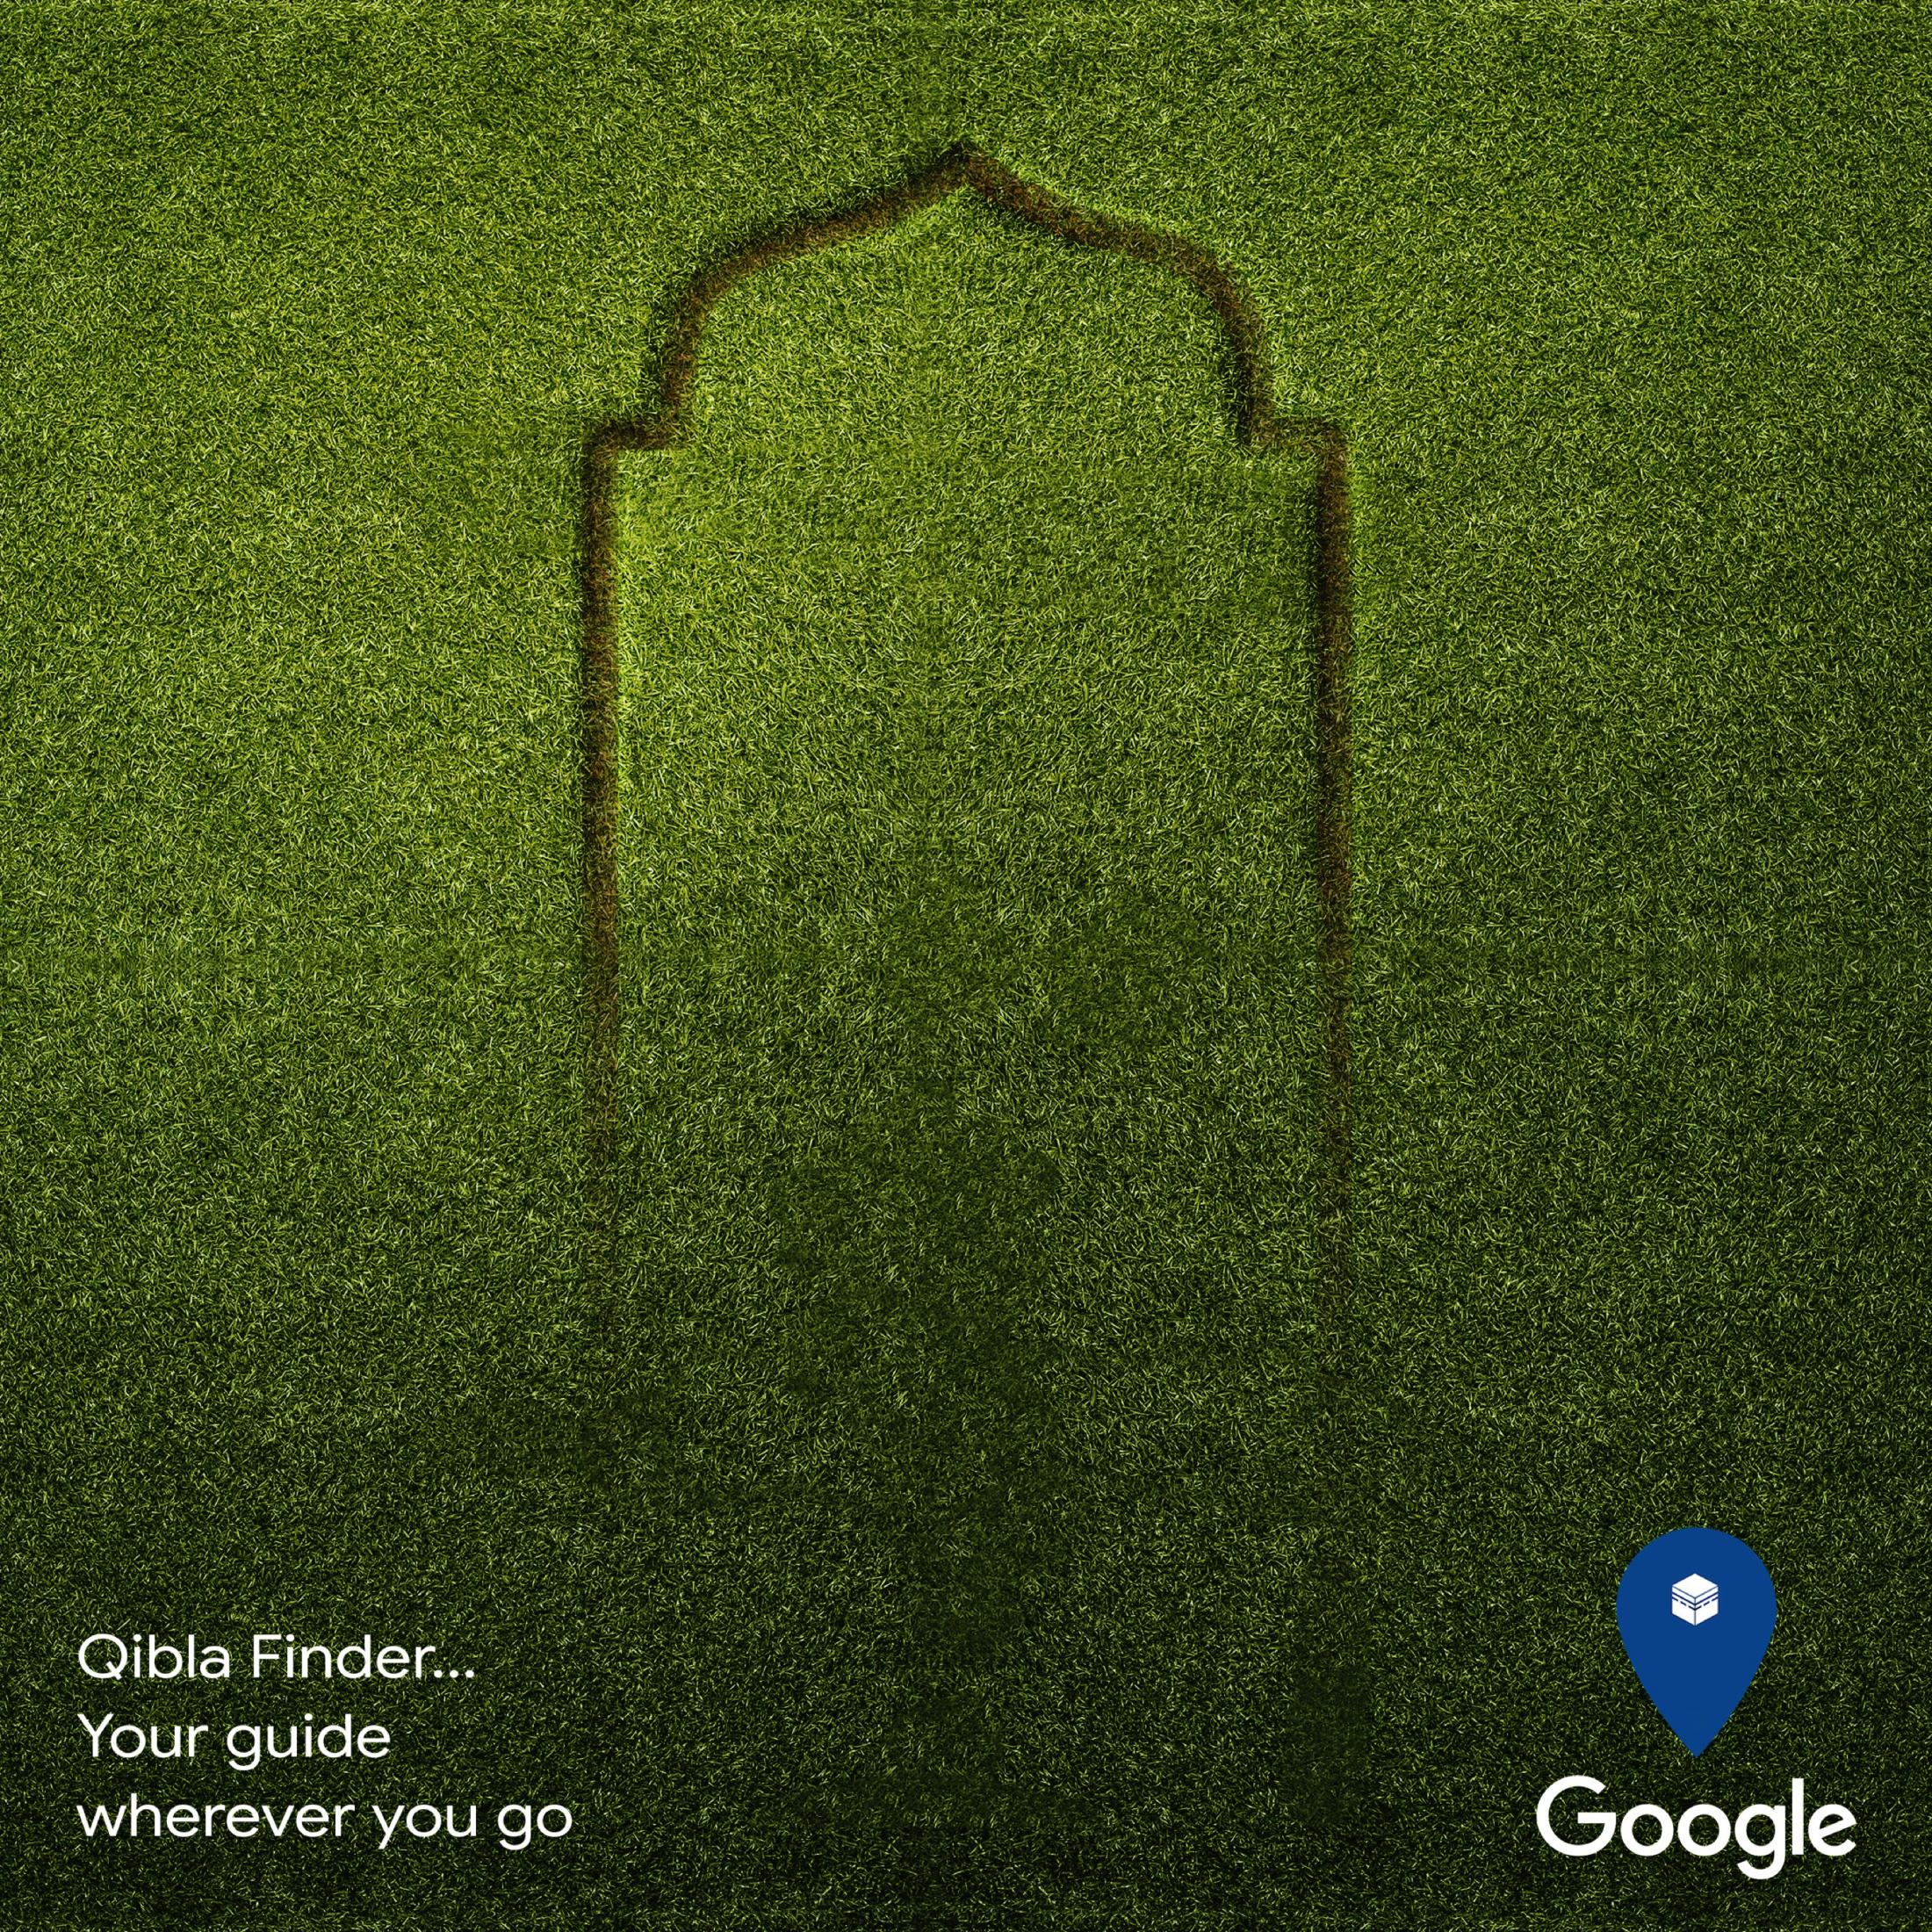 Google Print Ad - Qibla Finder, 2